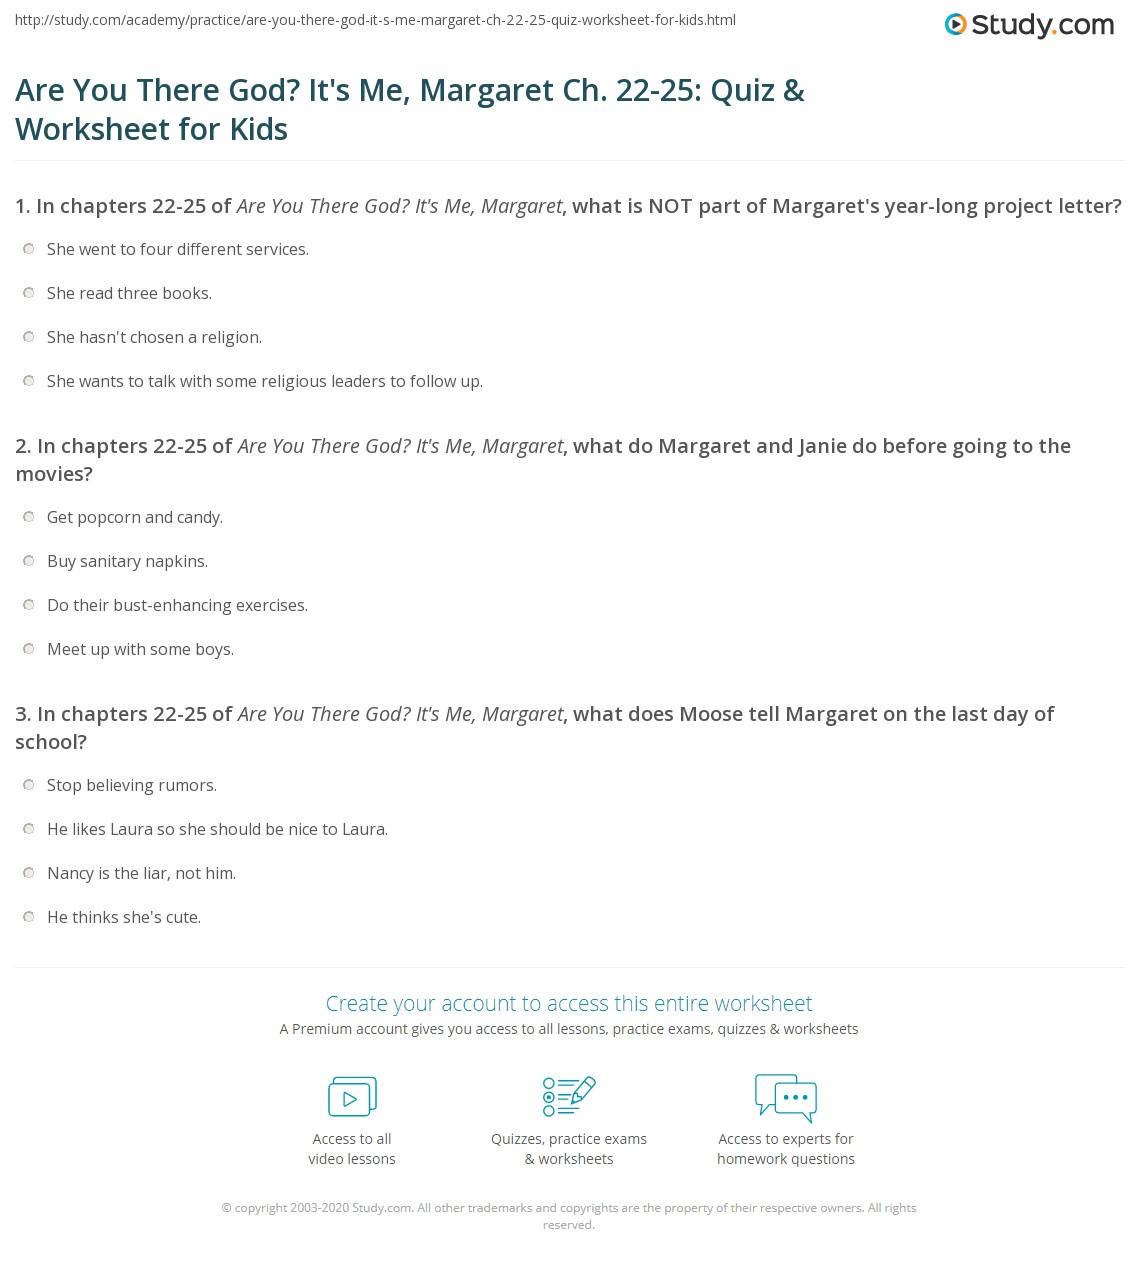 Are You There God Its Me Margaret Ch 22 25 Quiz Worksheet For